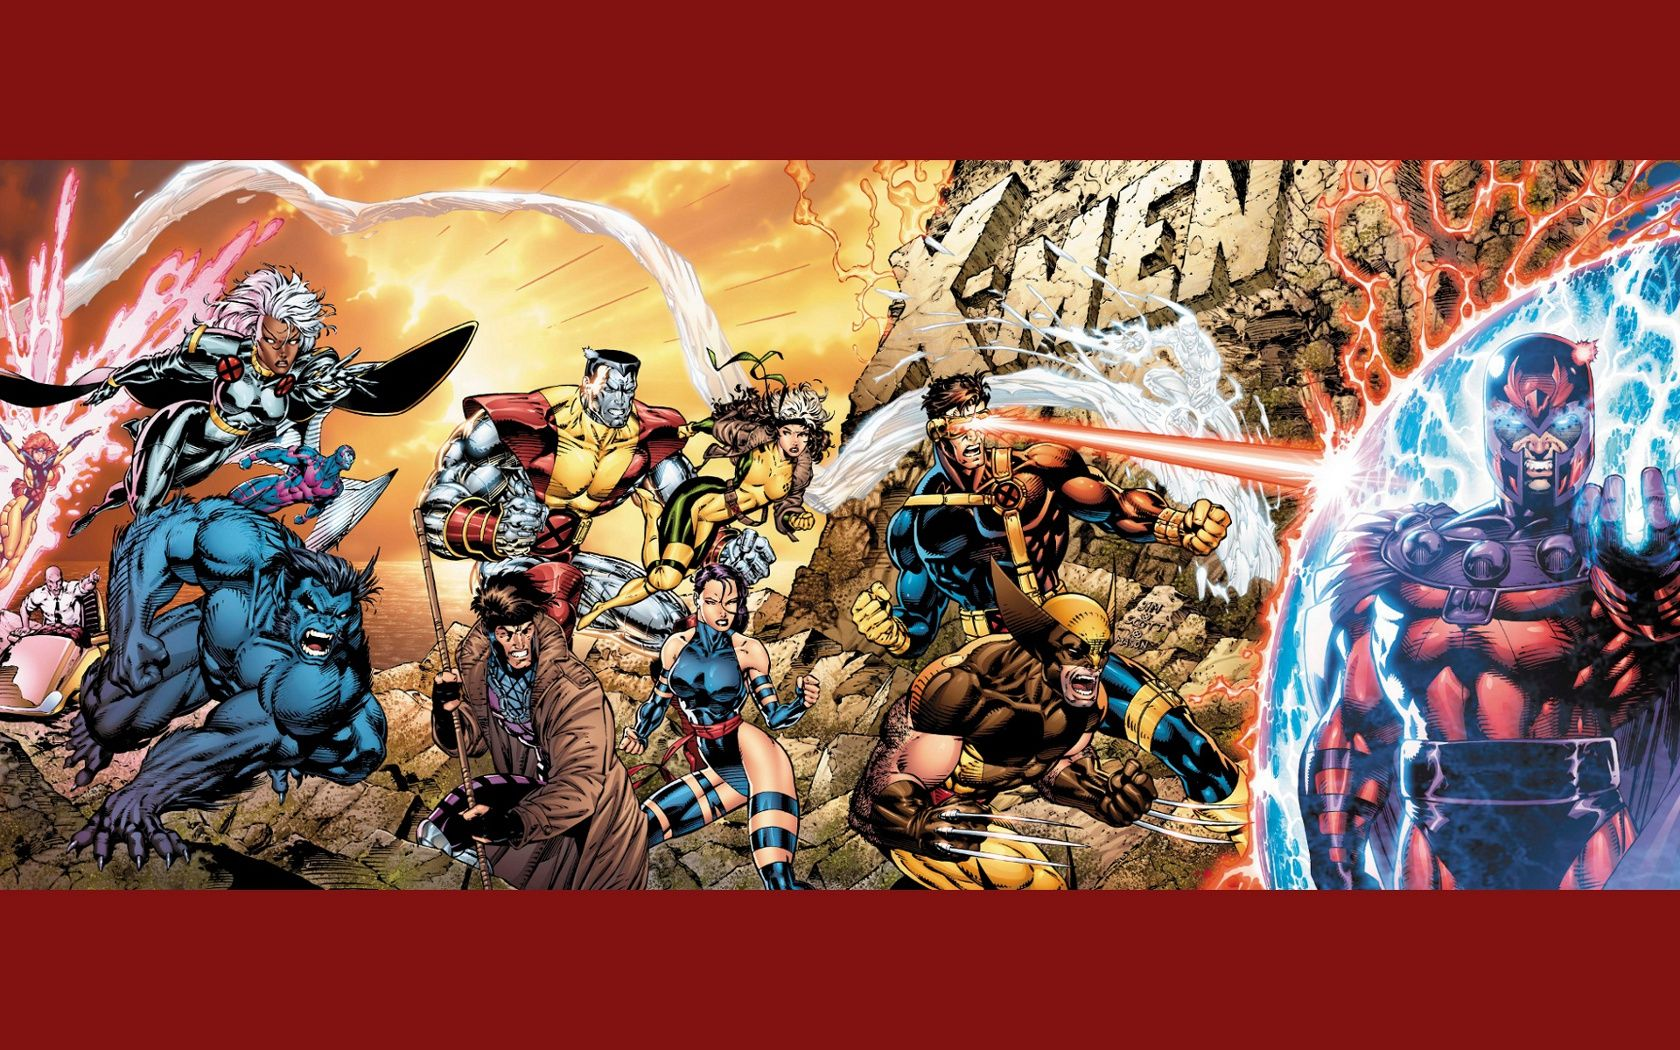 1680x1050 Uncanny X-Men Wallpapers and Background Images - stmed.net